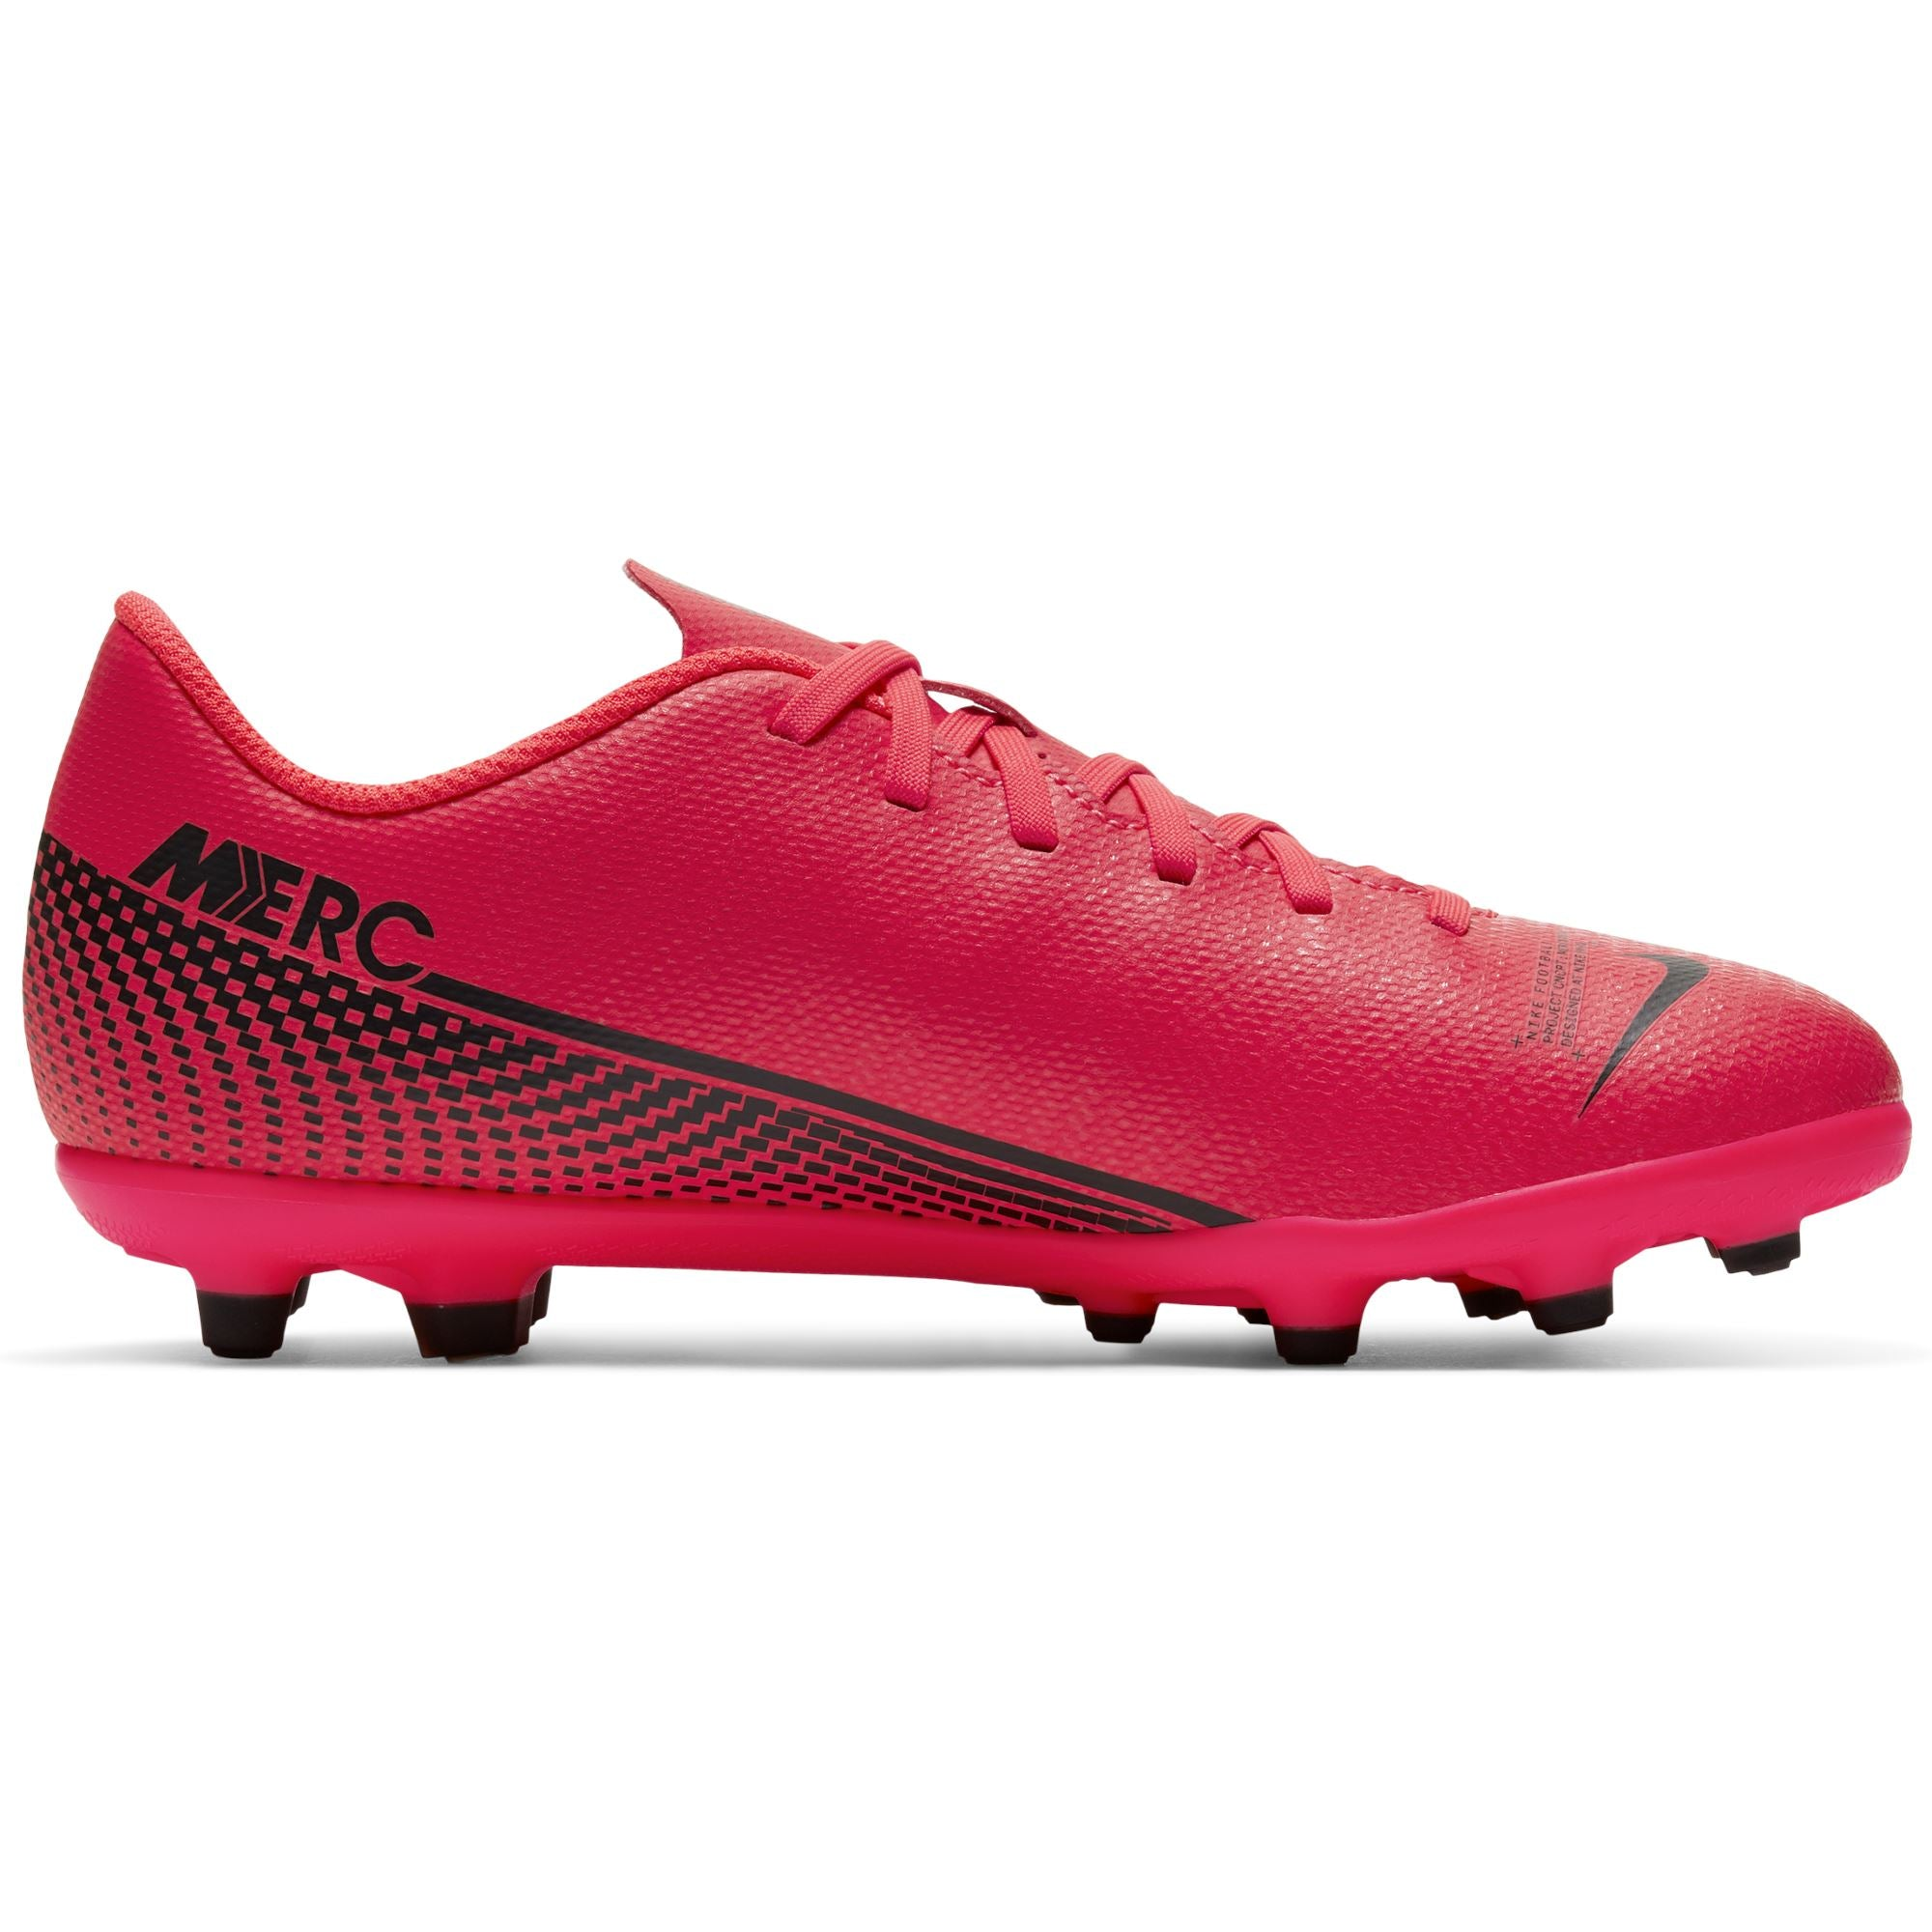 Nike Jr. Mercurial Vapor 13 Club Mg - Laser Crimson/Black-Laser Crimson SP-Footwear-Kids Nike